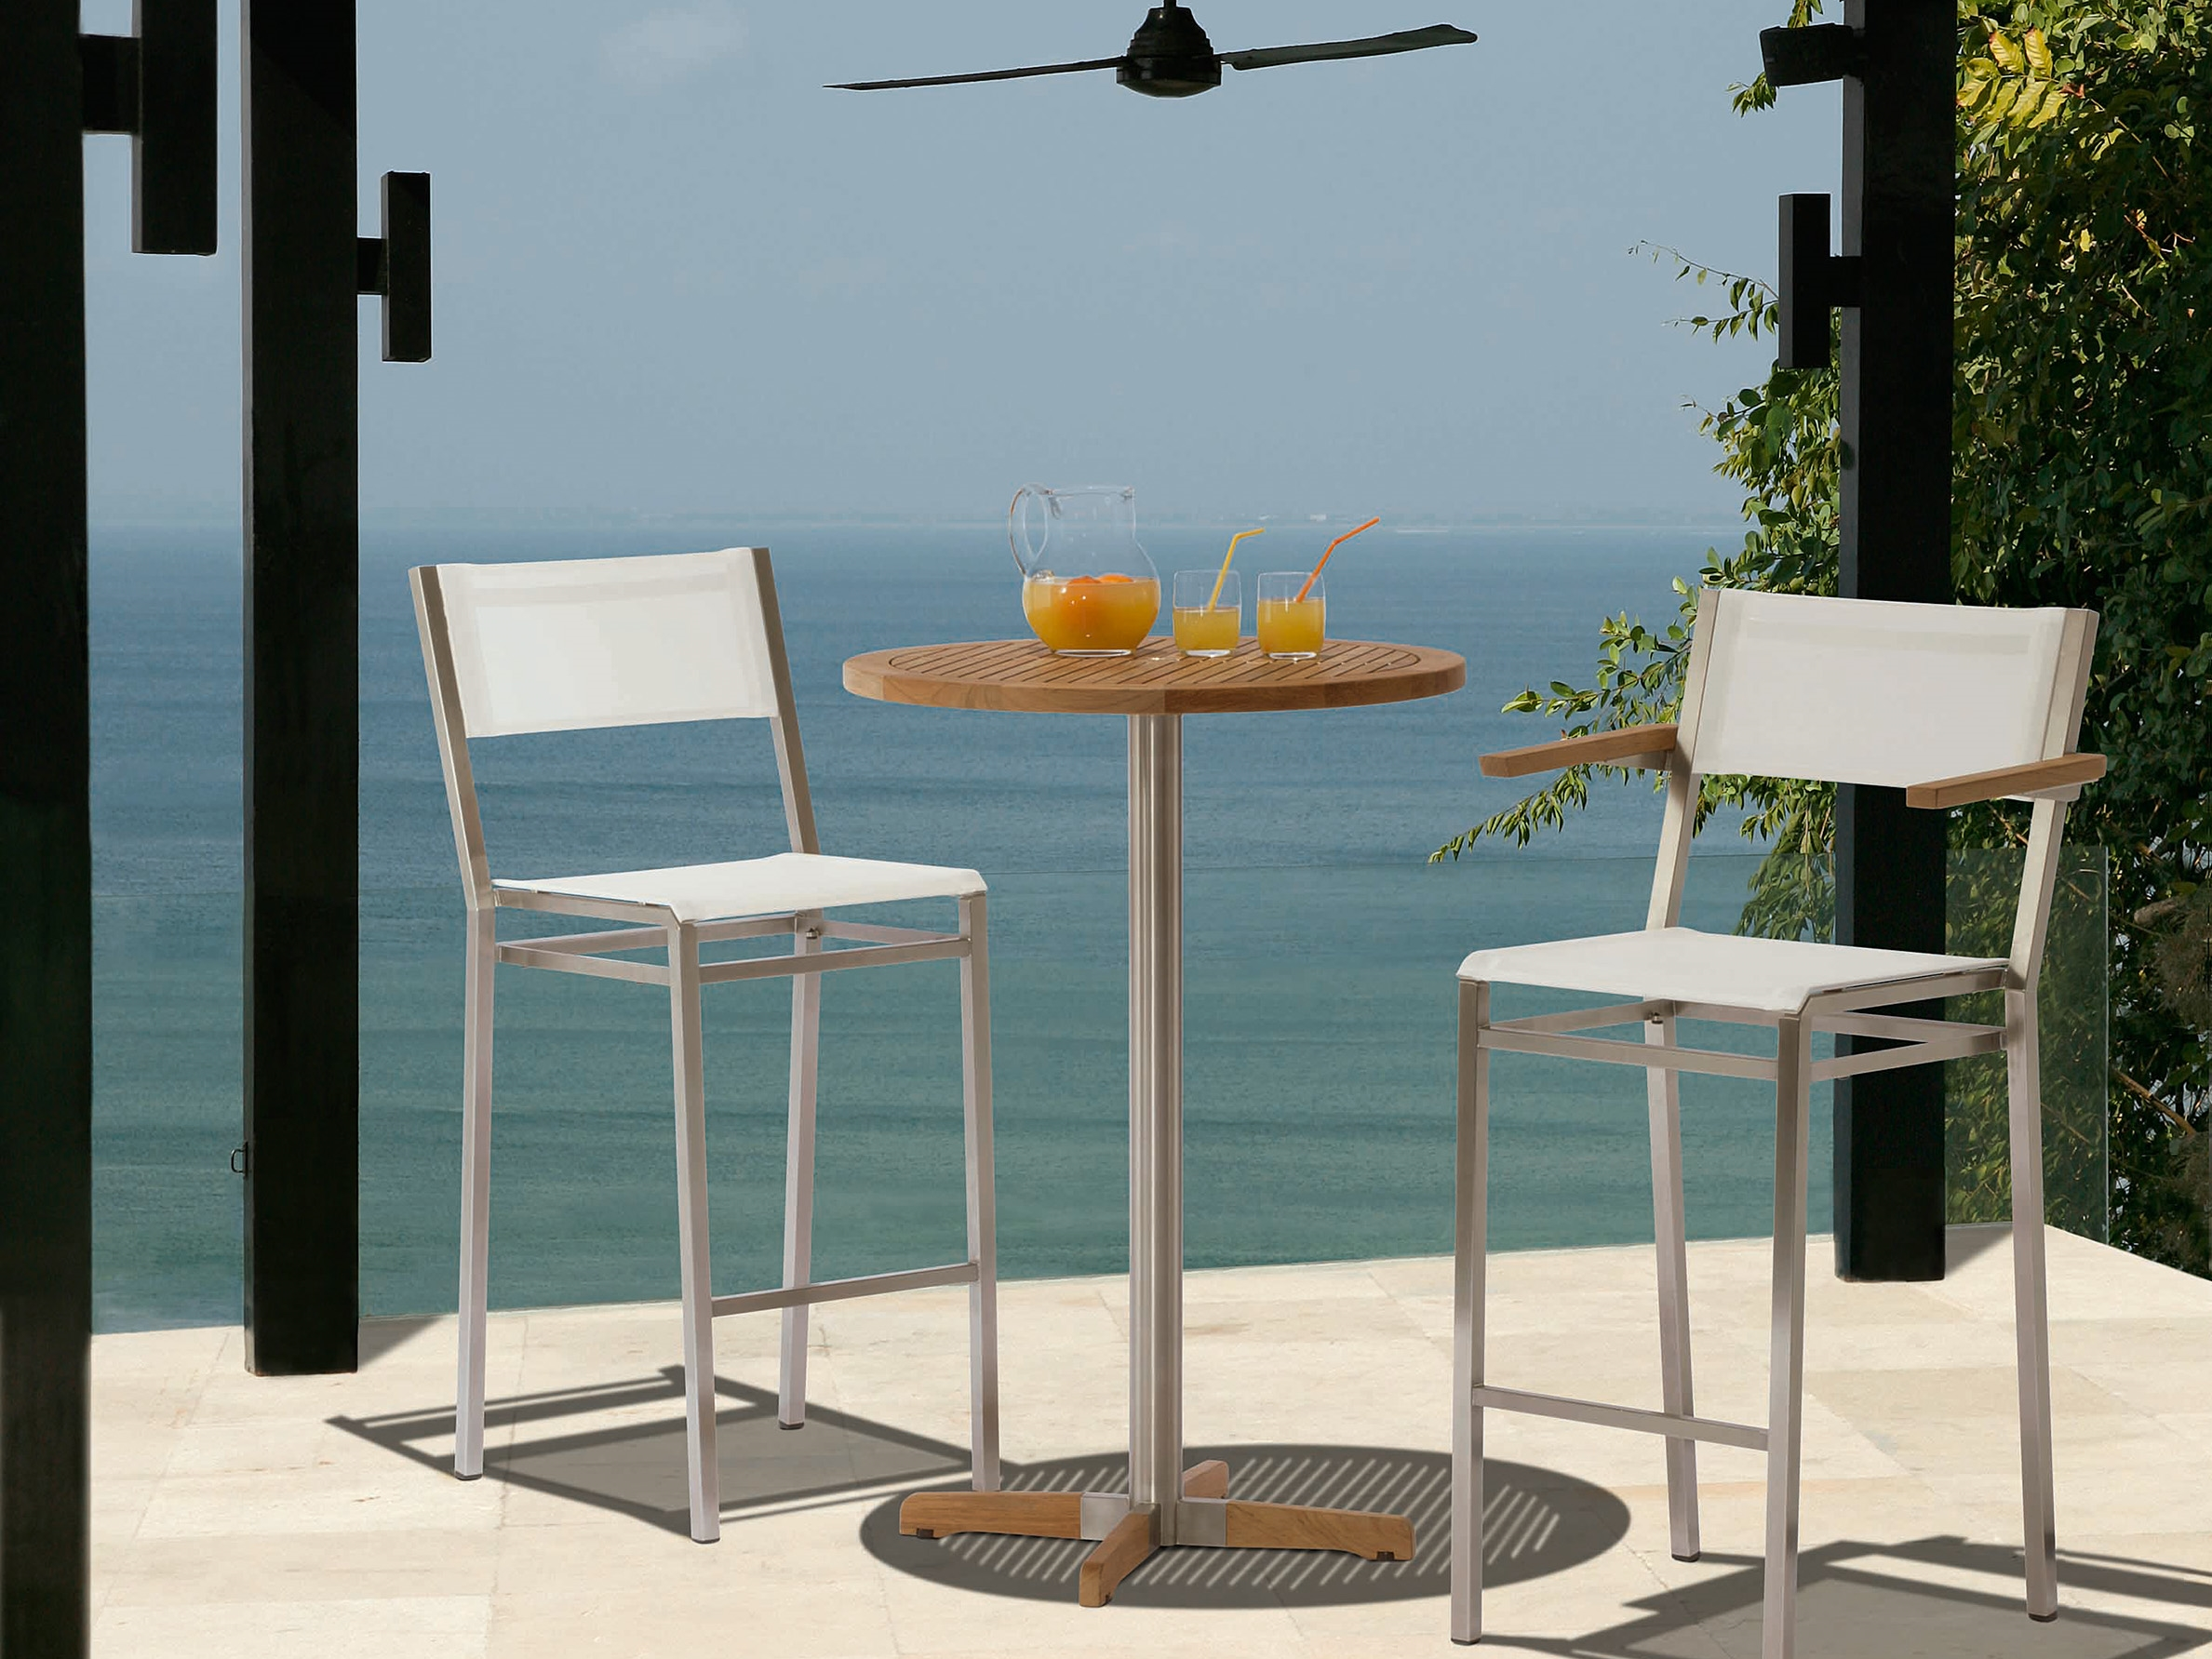 Video: Barlow Tyrie Outdoor Furniture